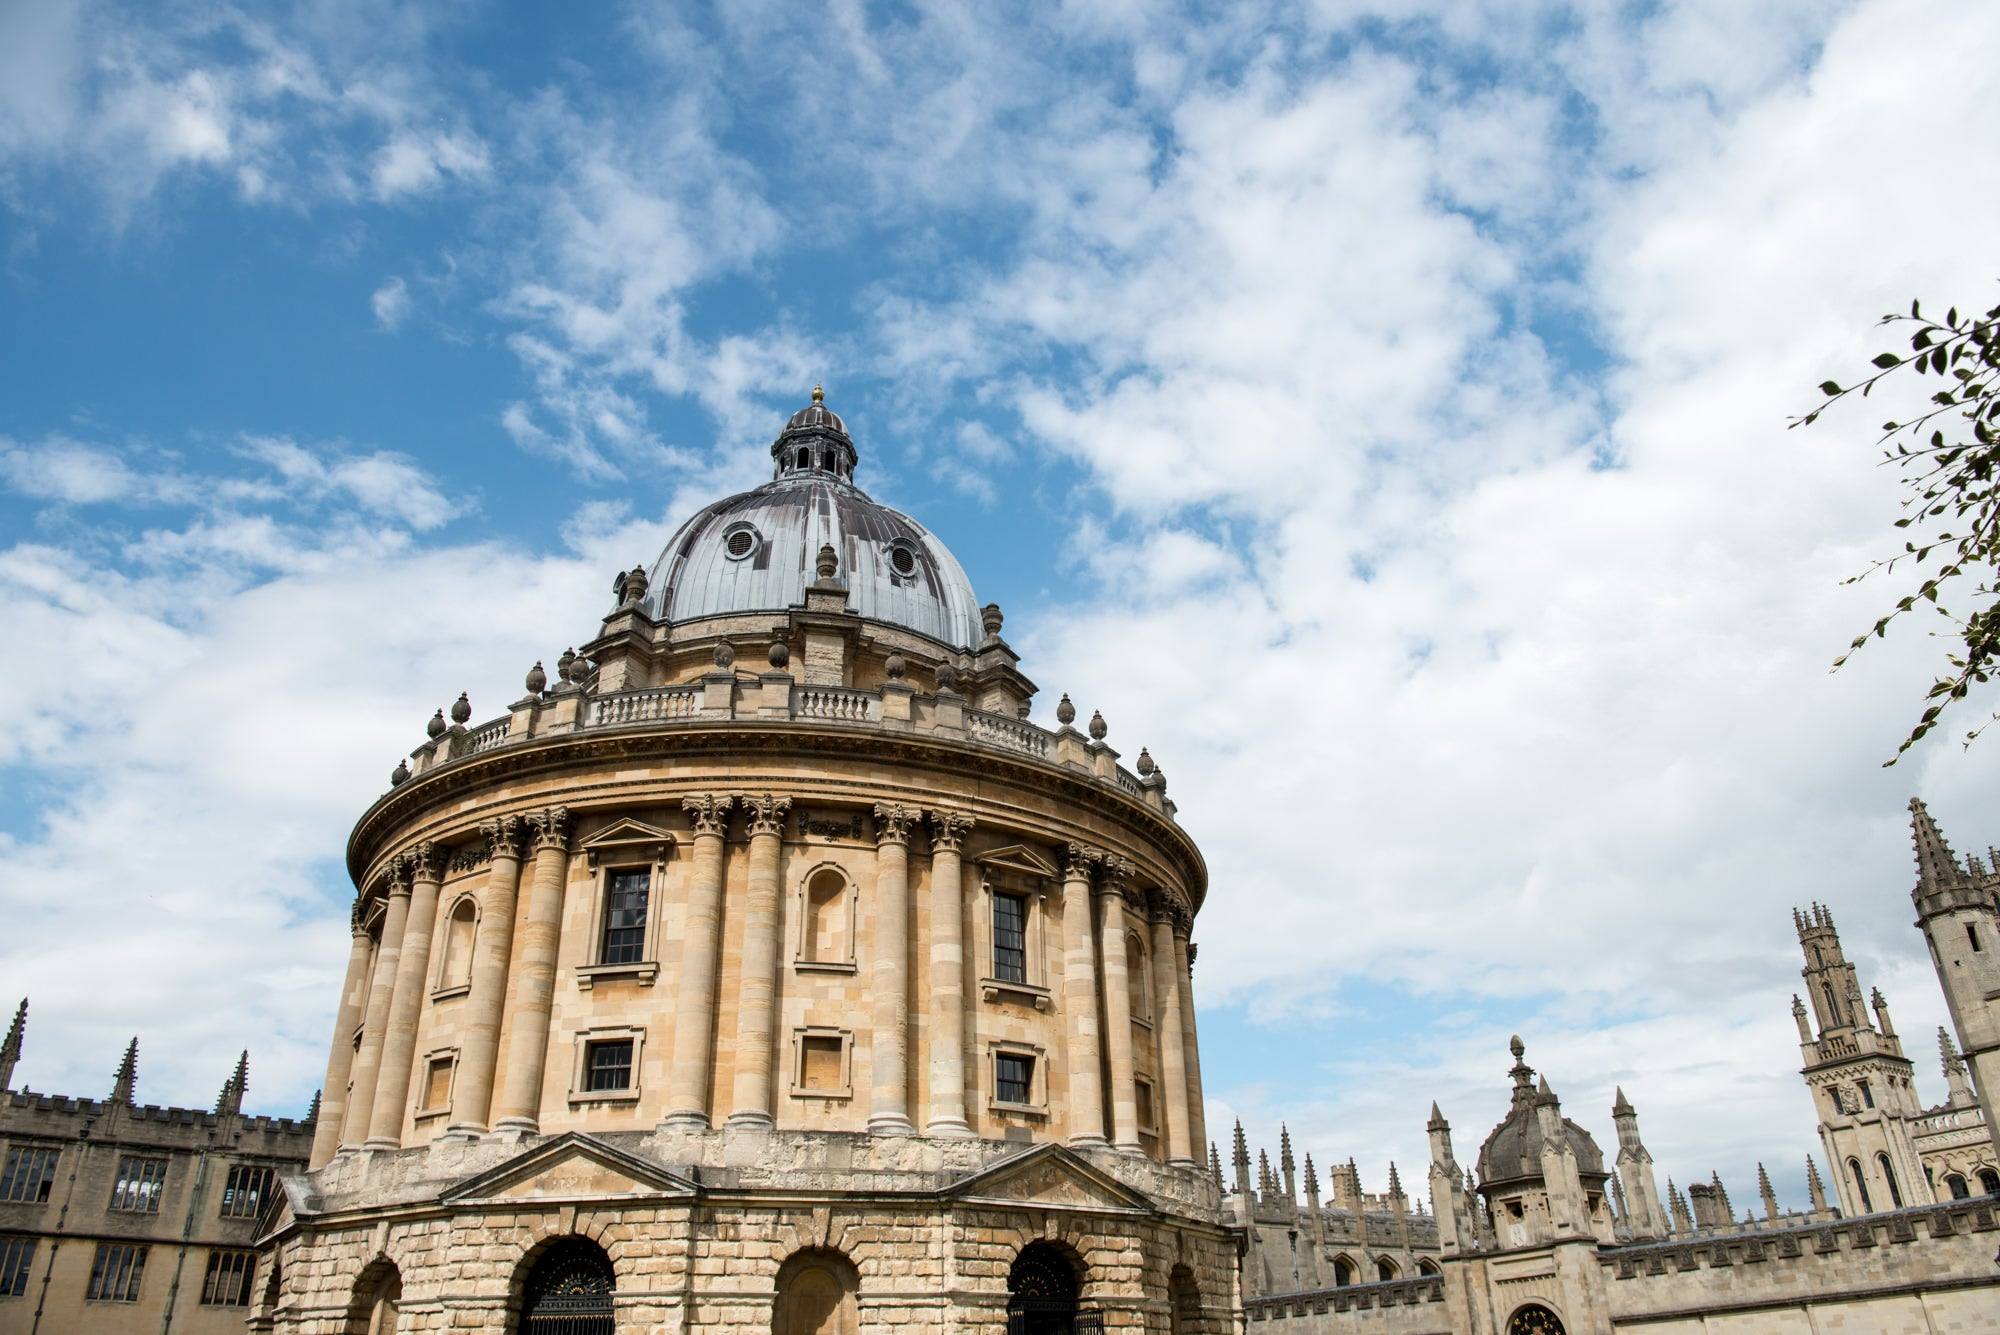 The Oxford University skyline